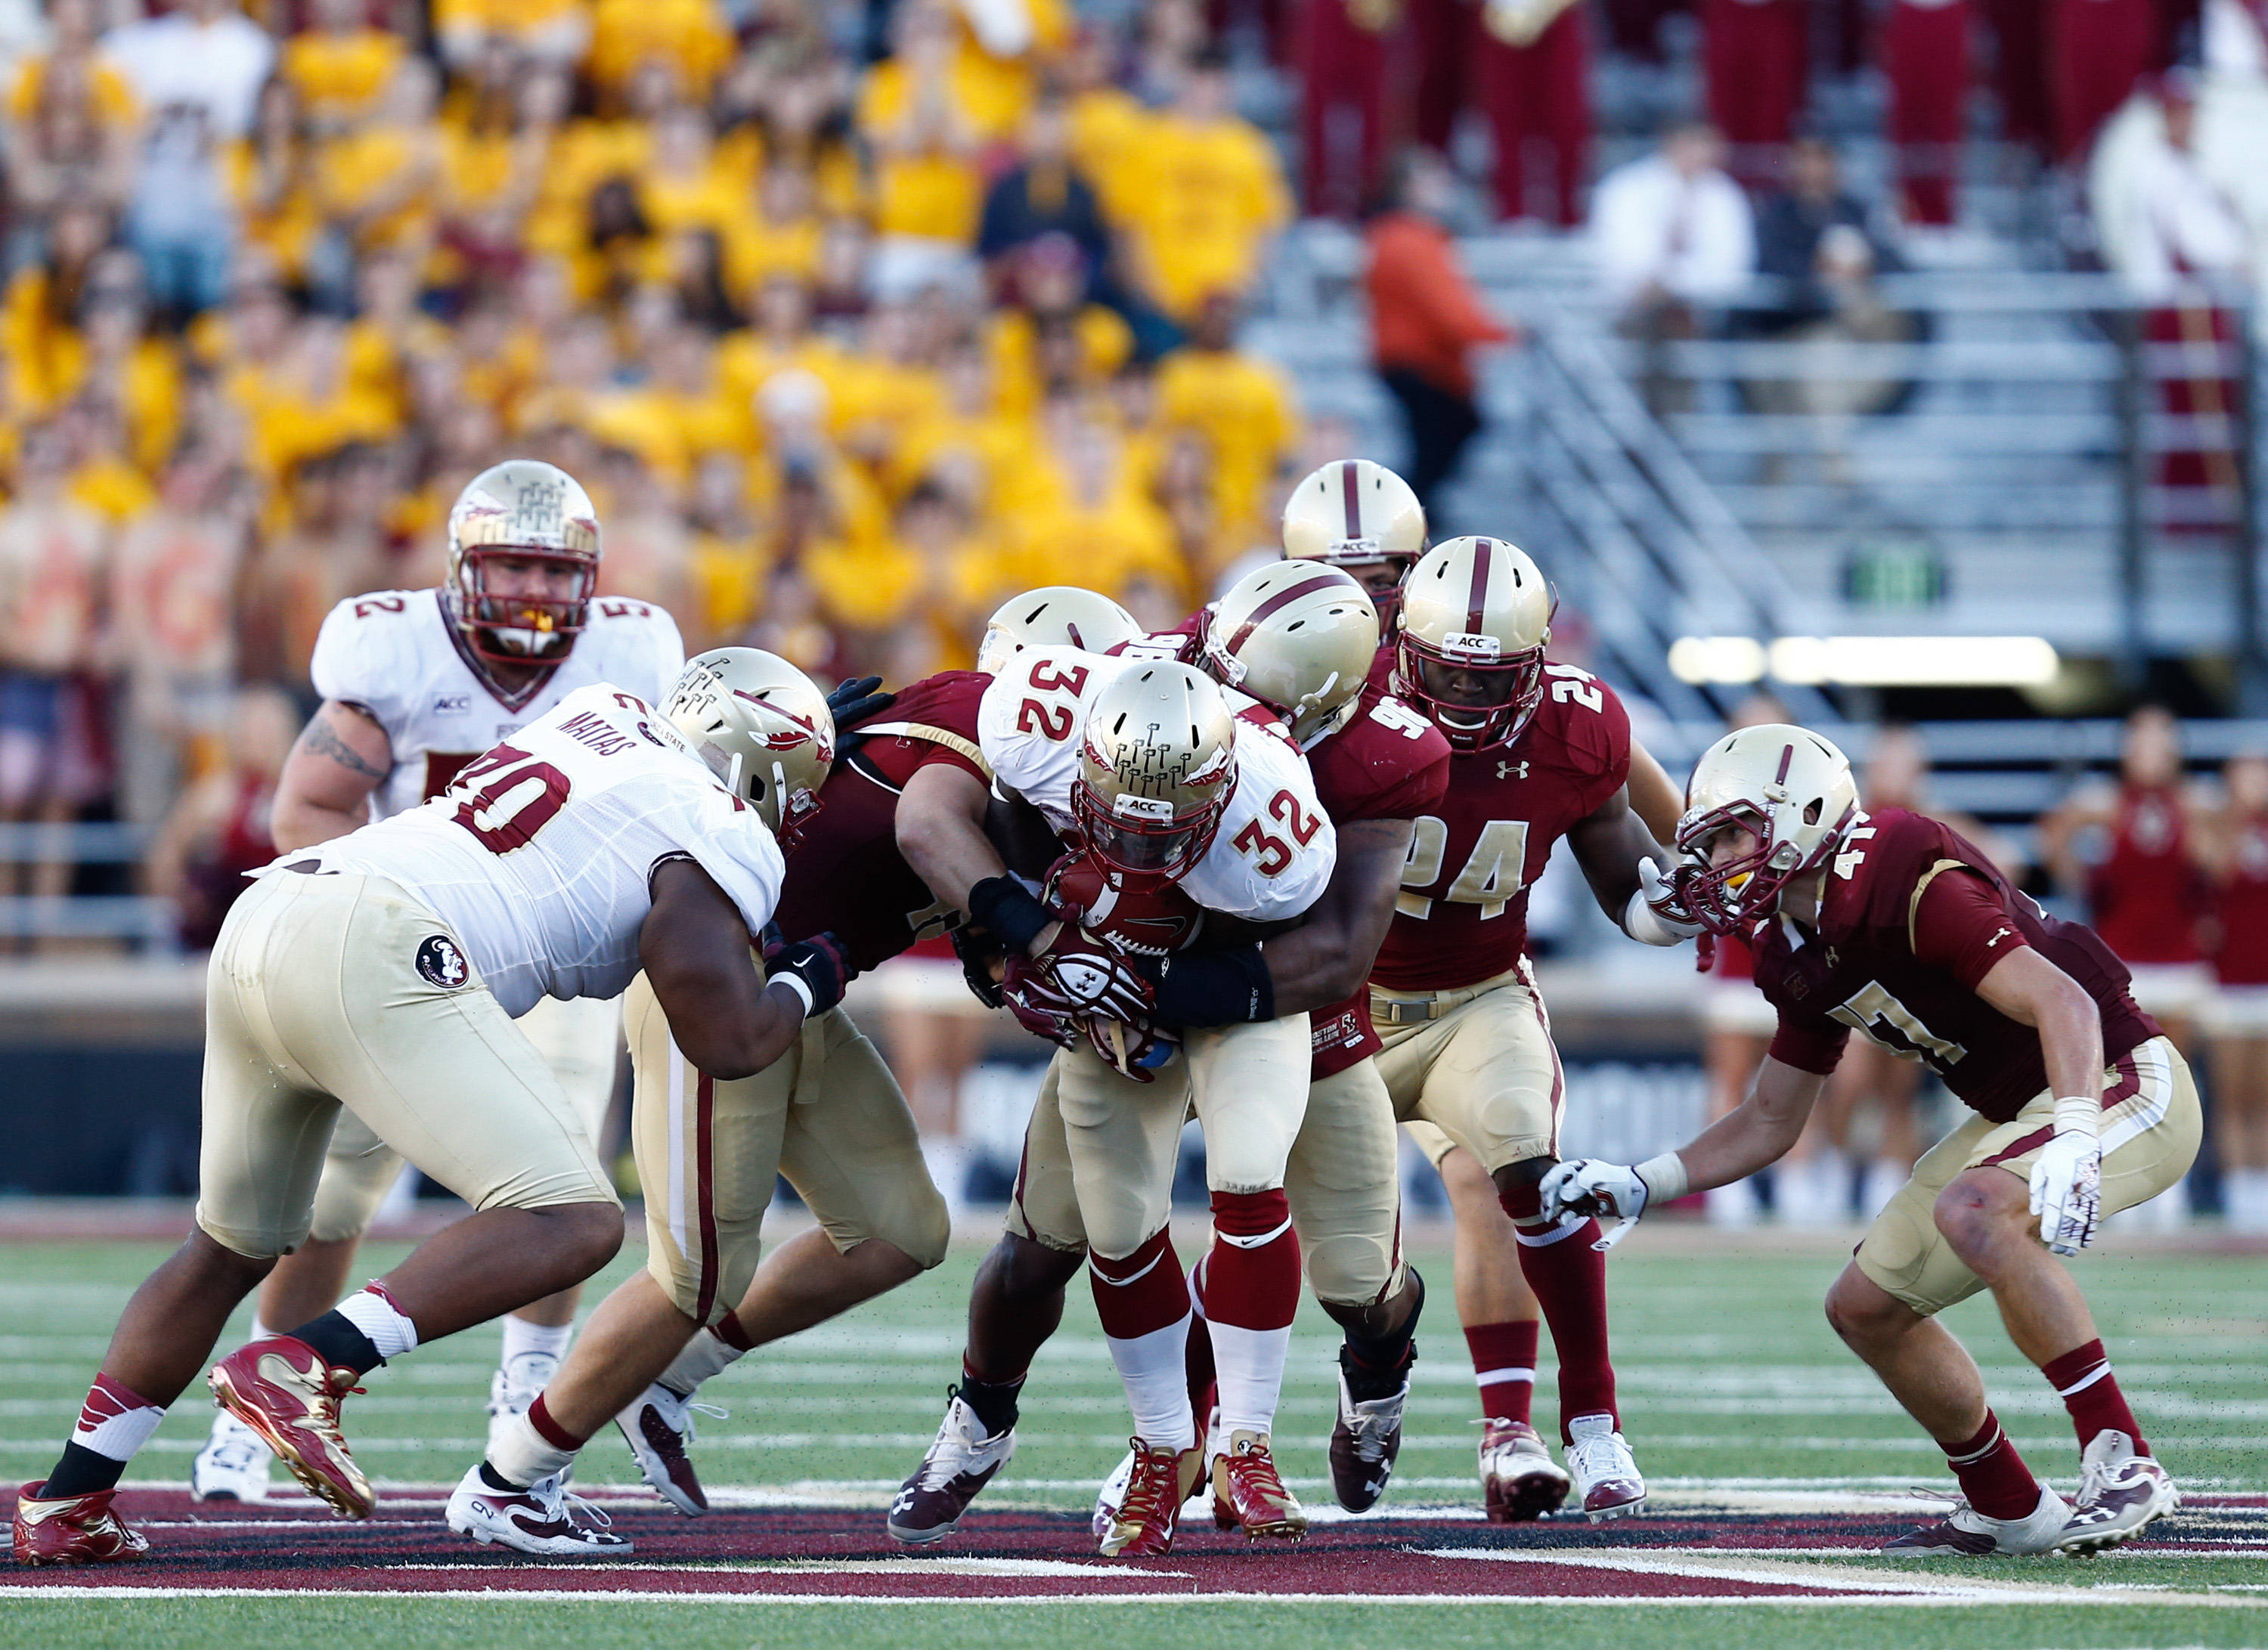 James Wilder Jr. (32) runs the ball against the Boston College Eagles. Mandatory Credit: Mark L. Baer-USA TODAY Sports